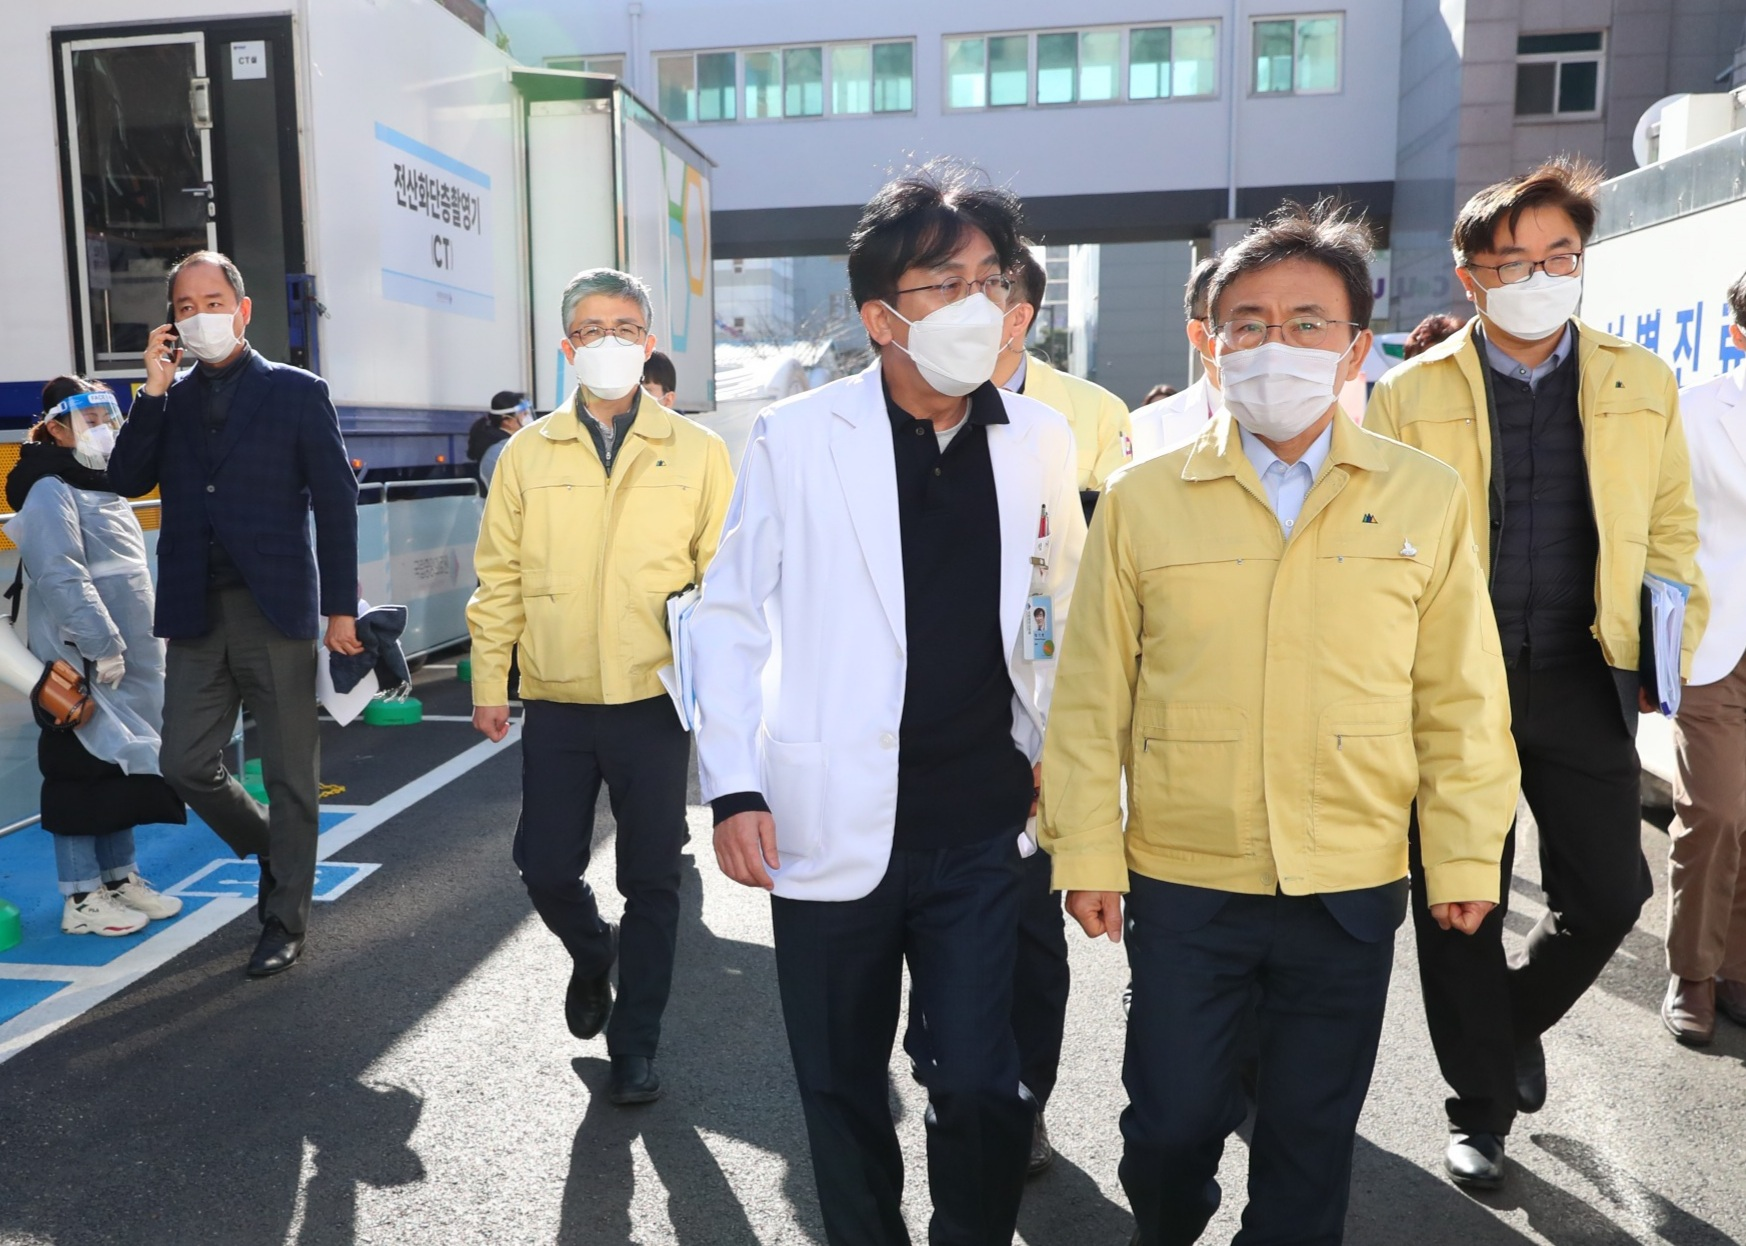 Minister Kwon Visits Joint Situation Room in Seoul Area14